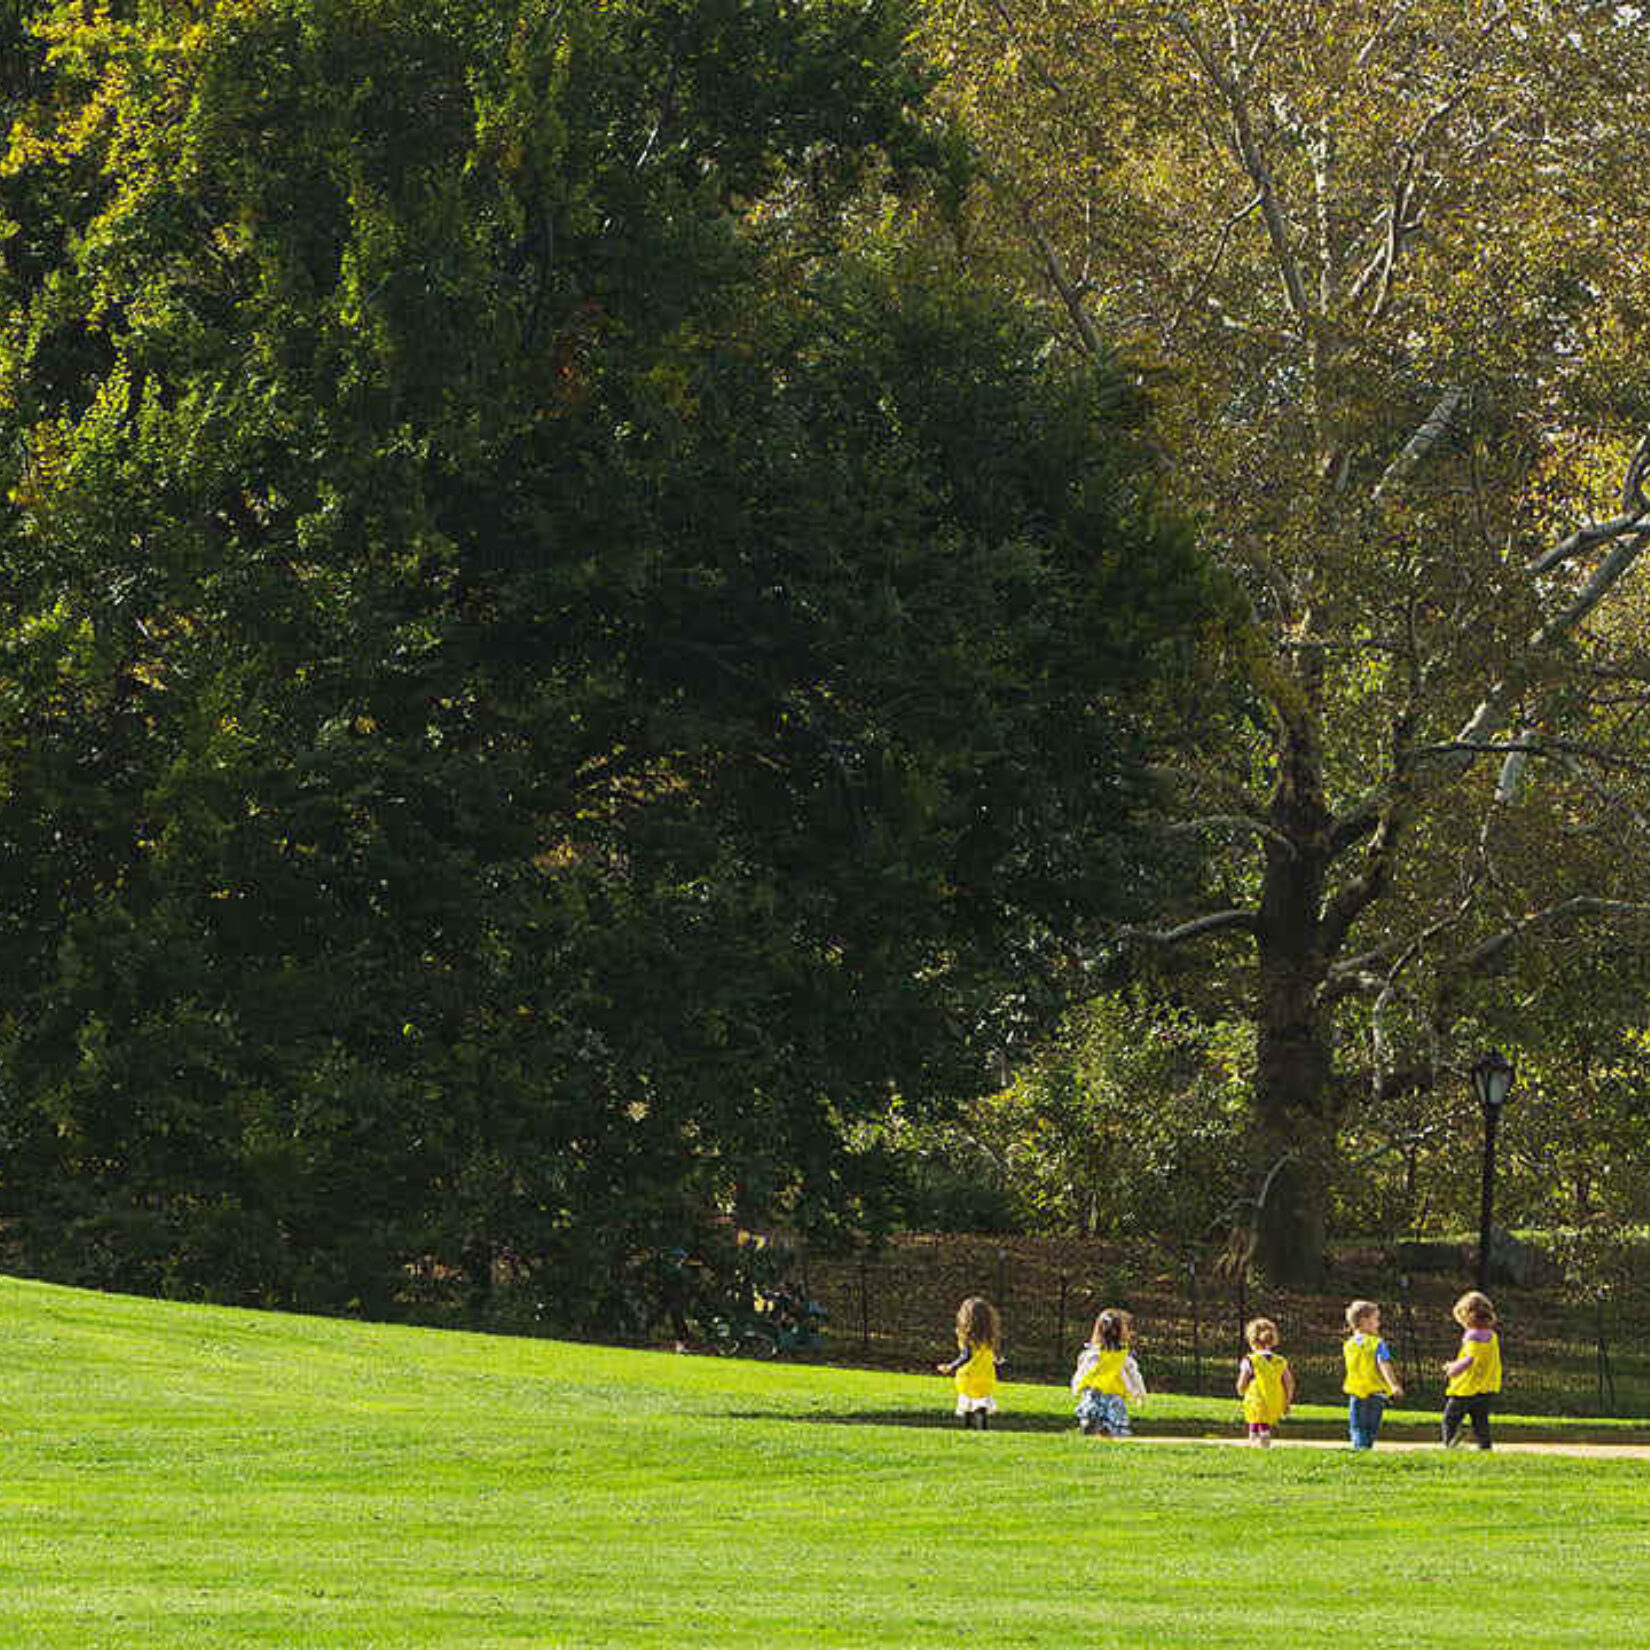 A rolling hill in the distance is scaled by a small group of young children on a sunny, autumn day.